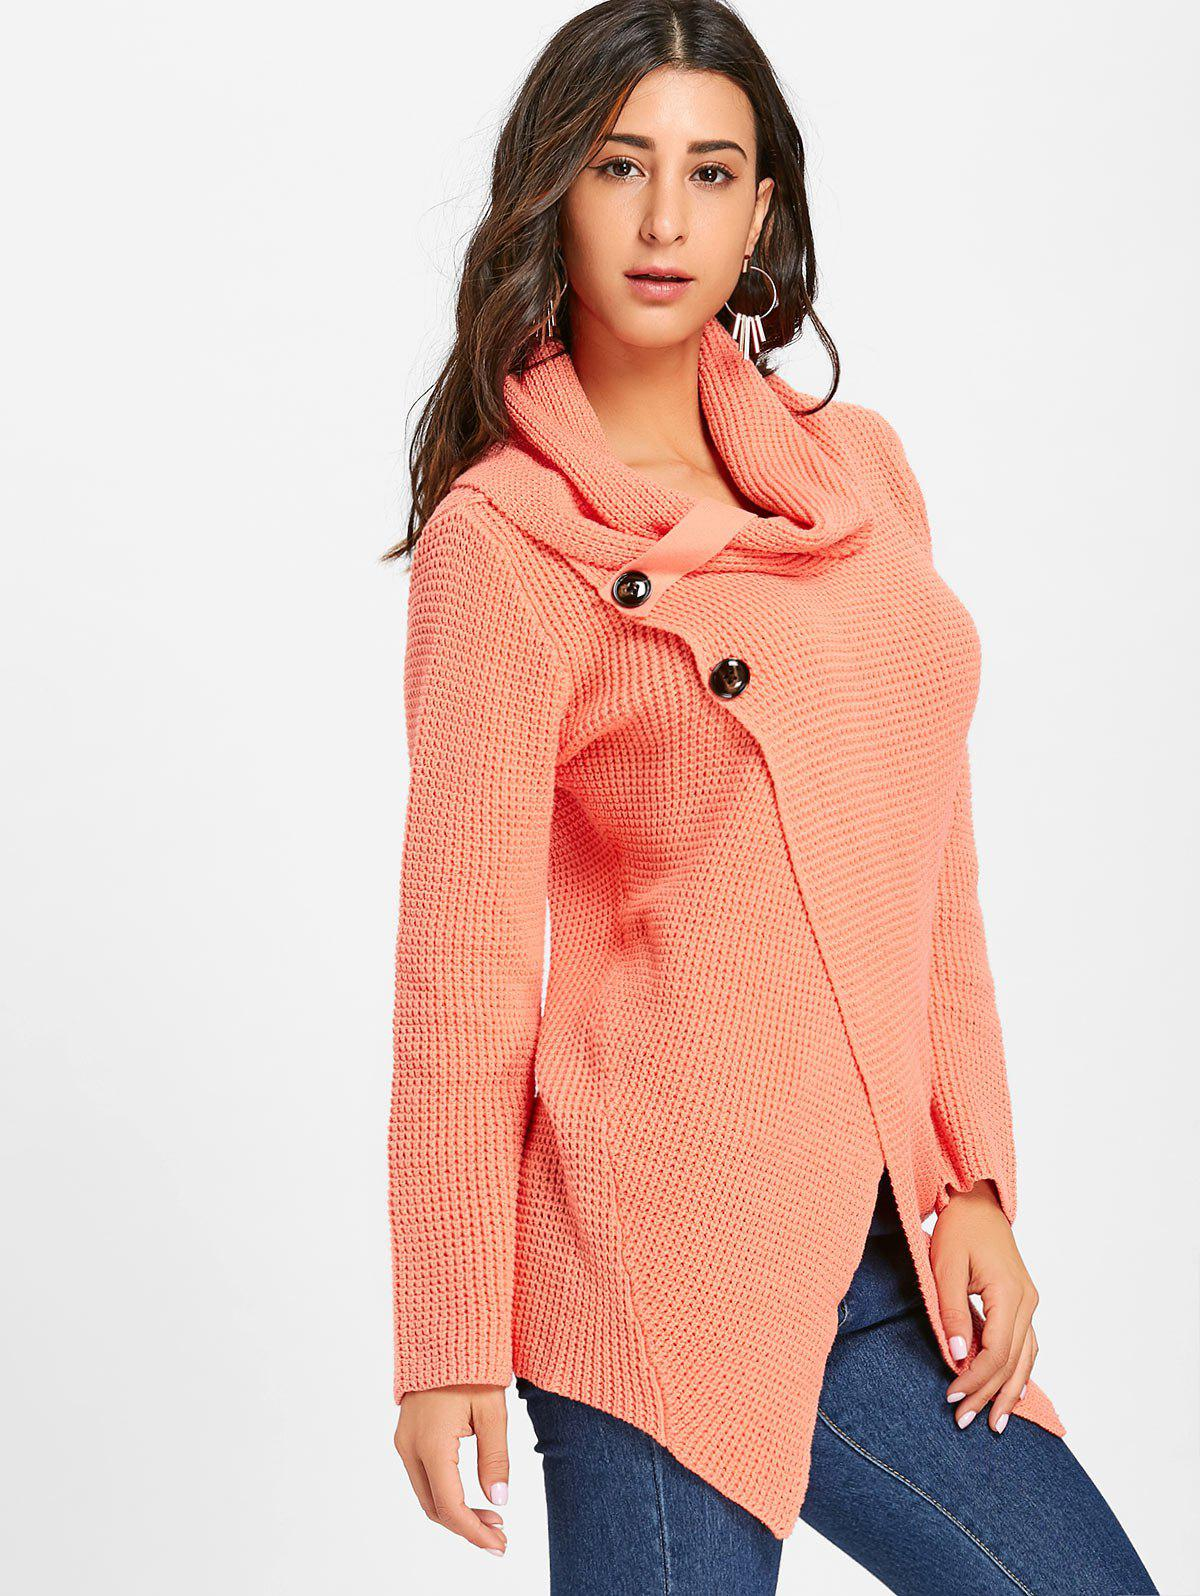 Cowl Neck Split Front Knitted Sweater - ORANGEPINK XL